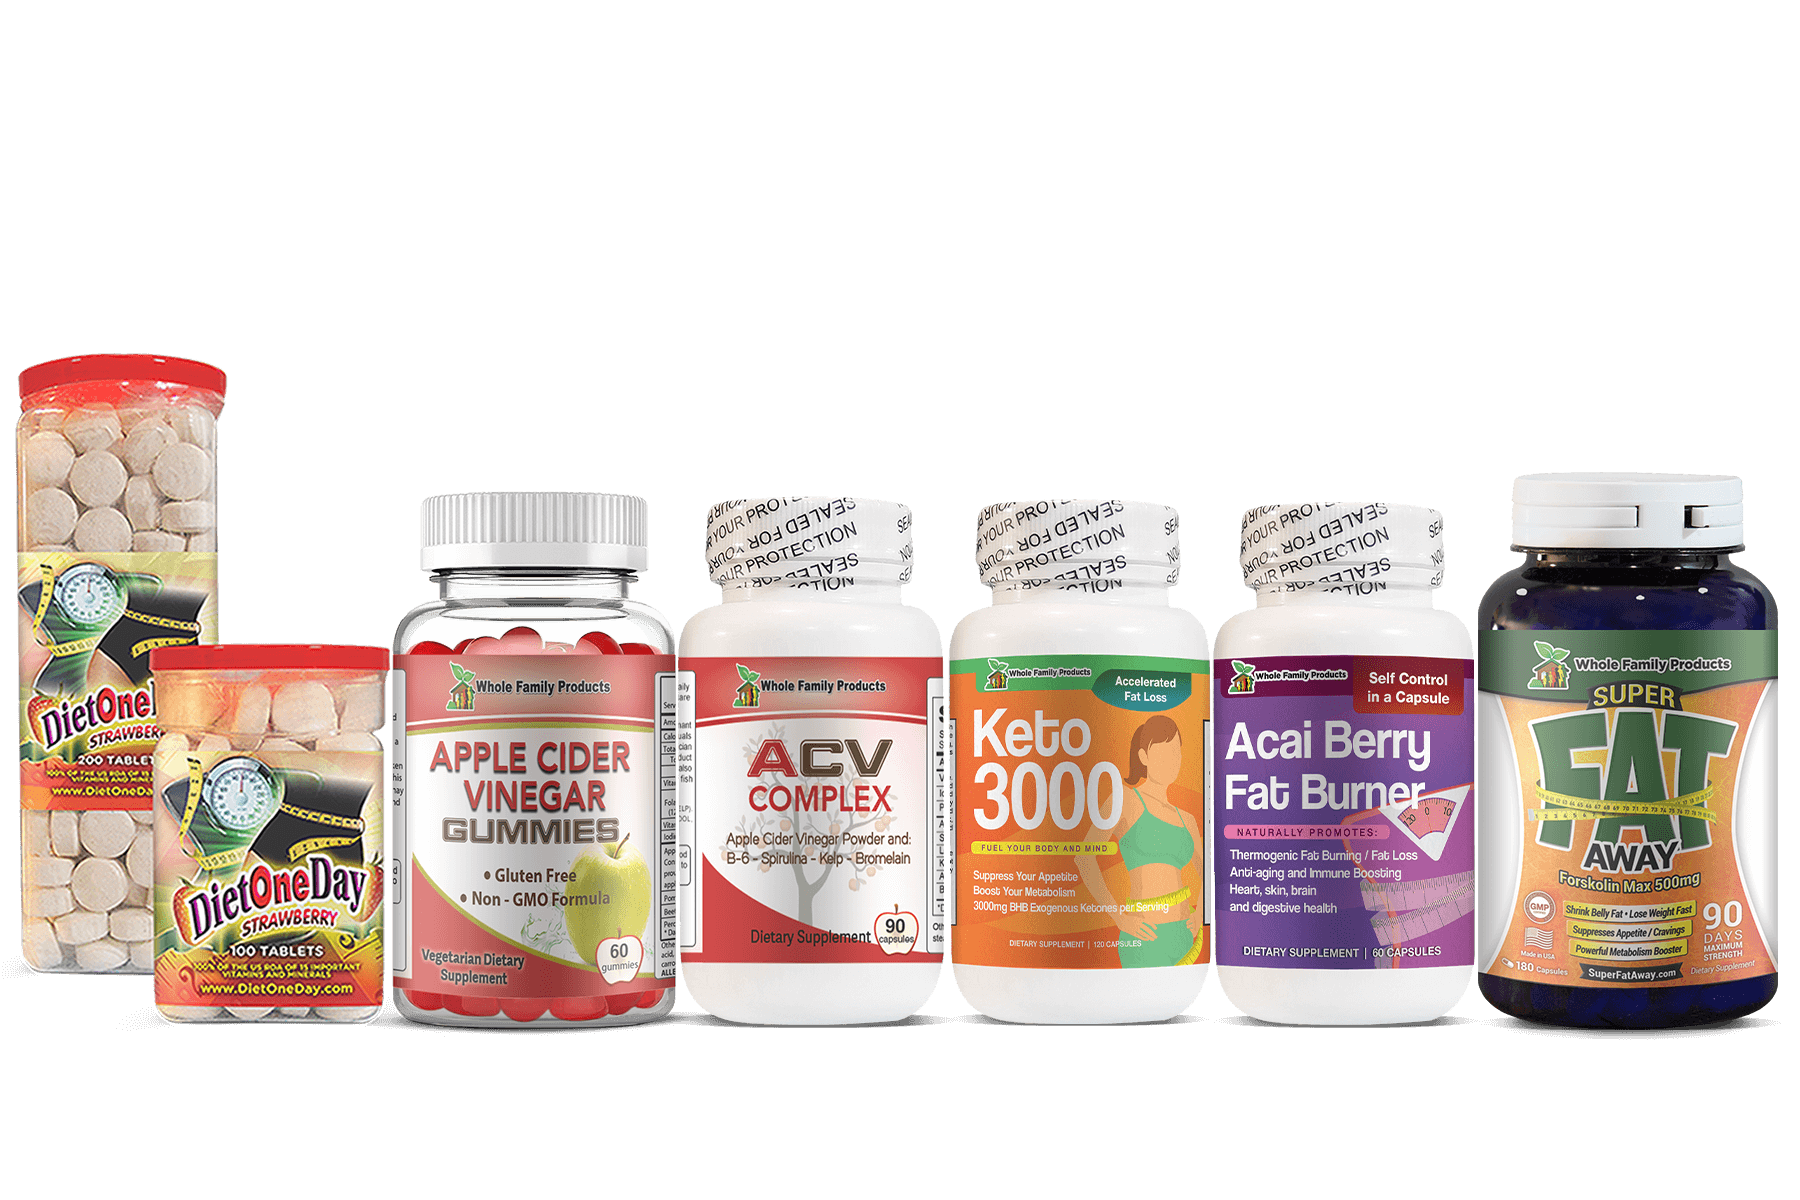 Weight Loss Supplements Product Images